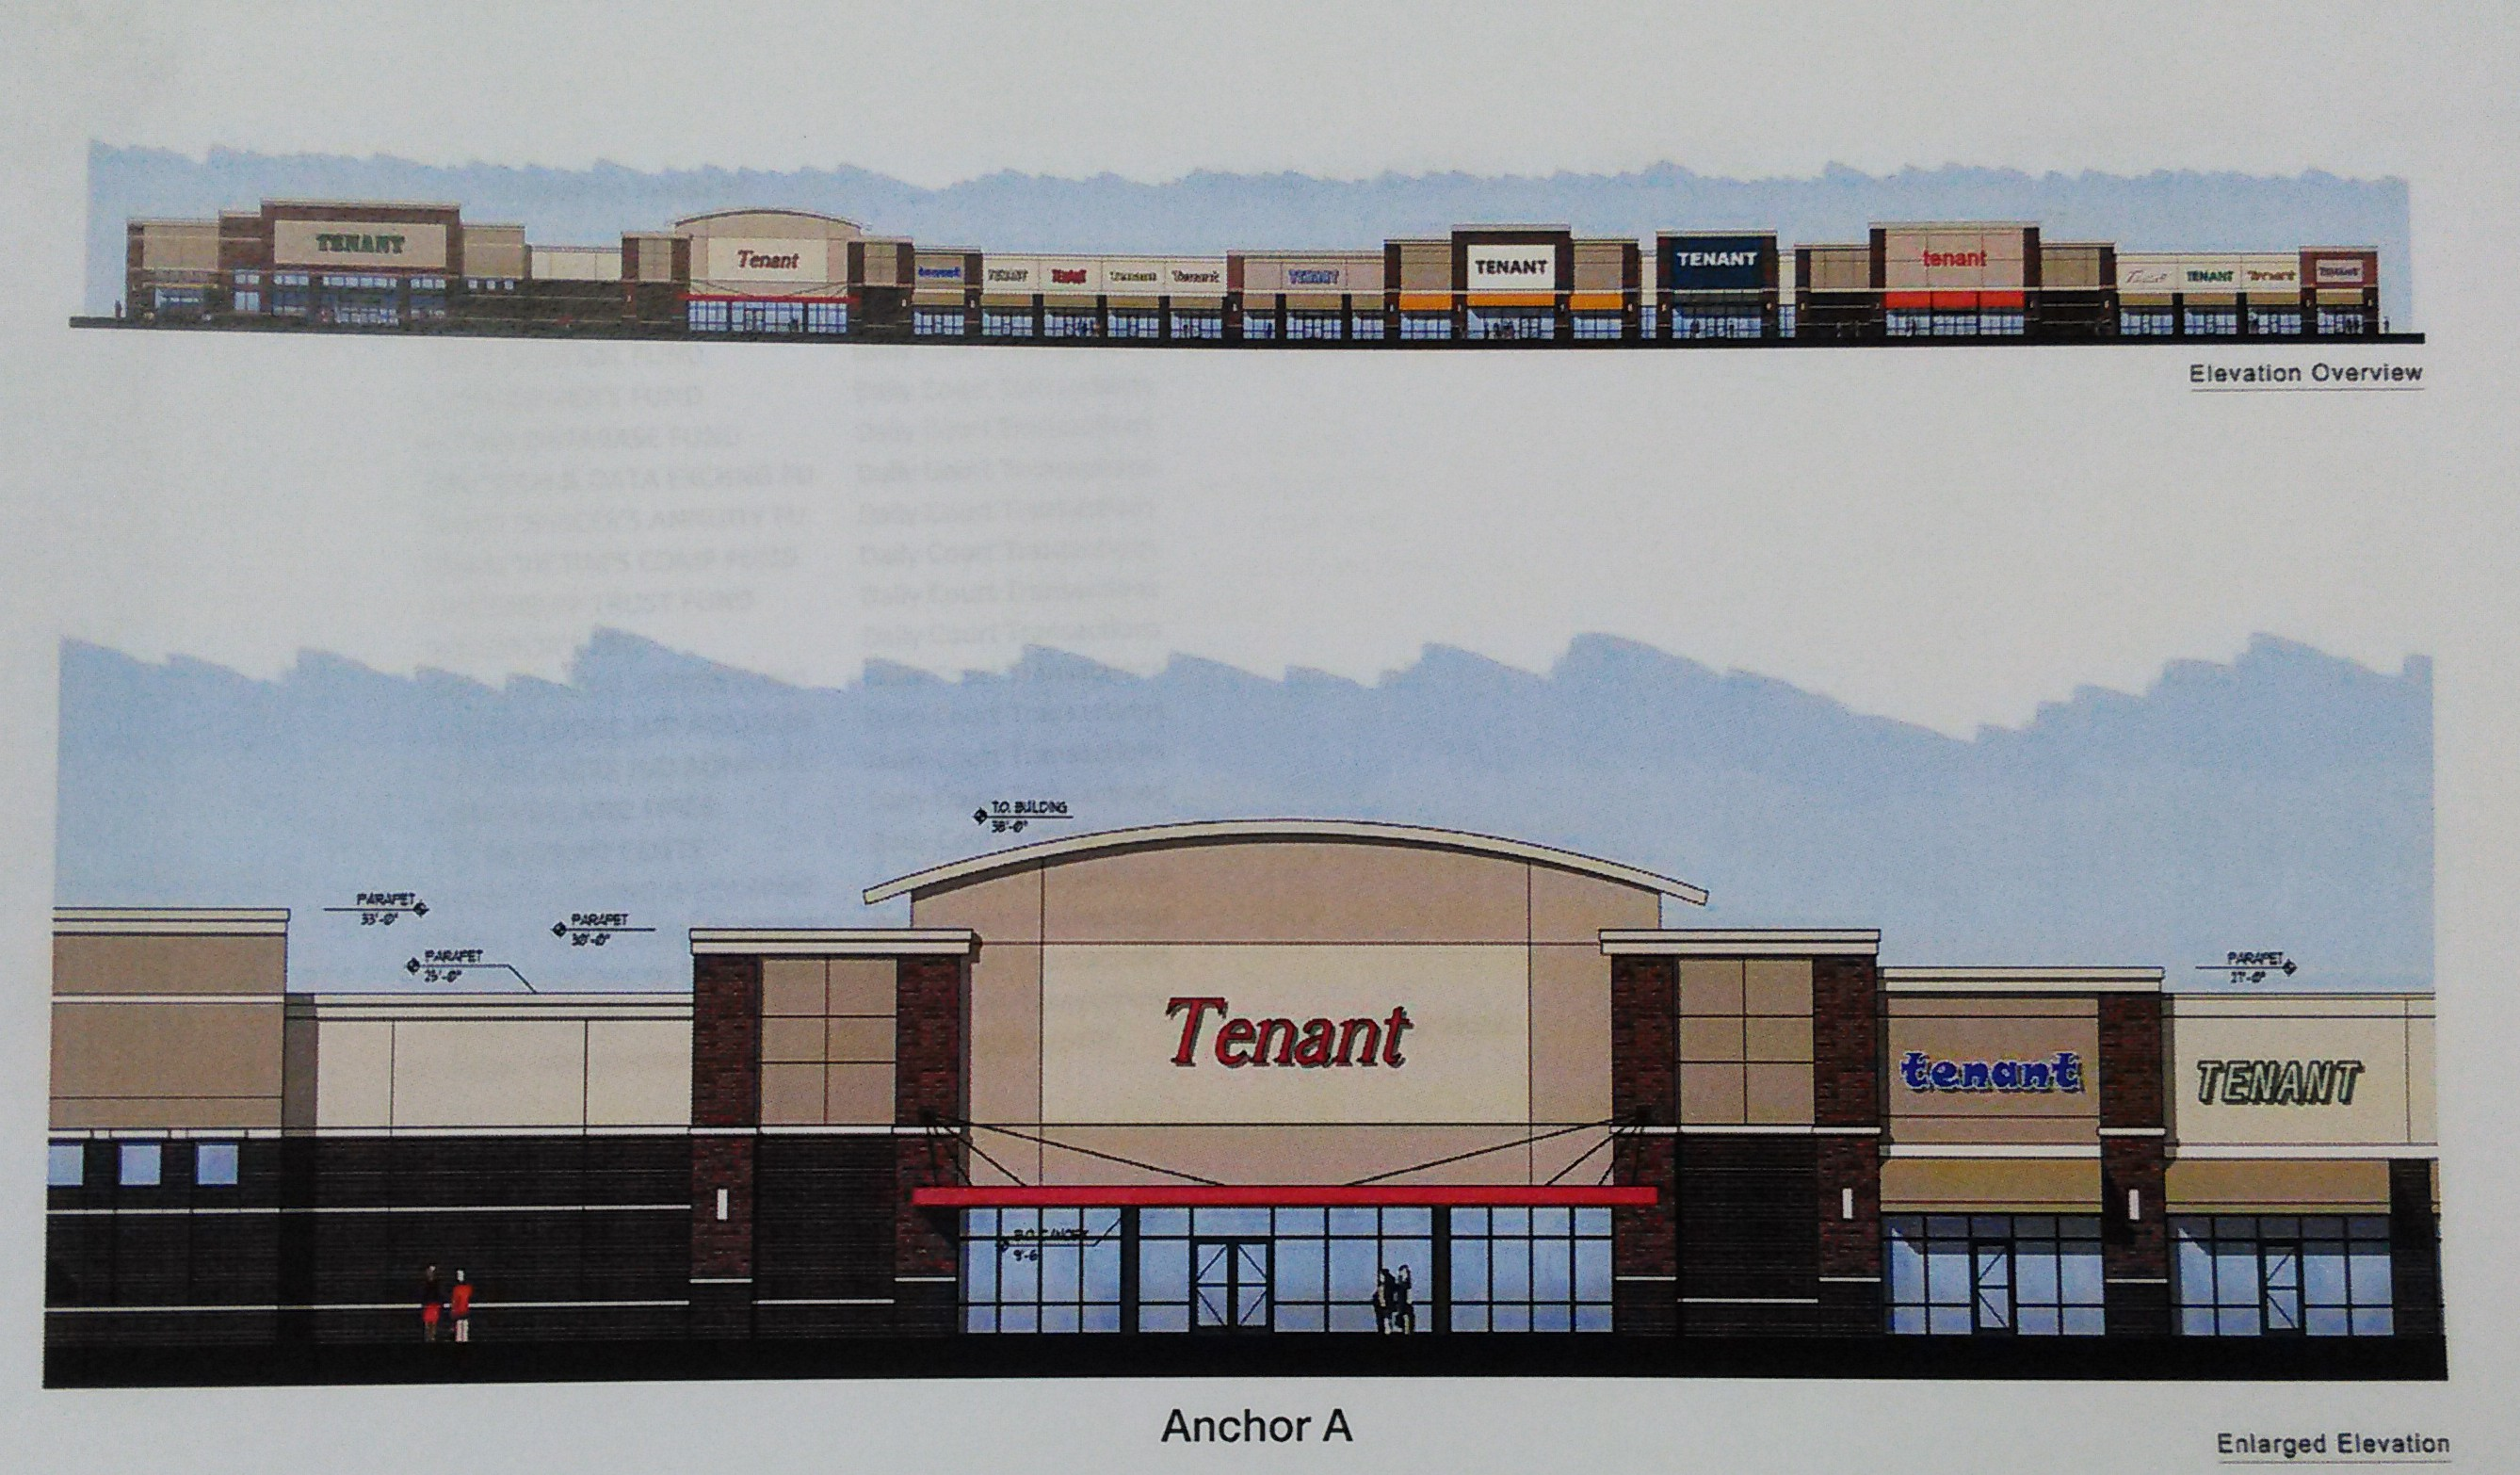 Here's what Trussville's new shopping center won't have